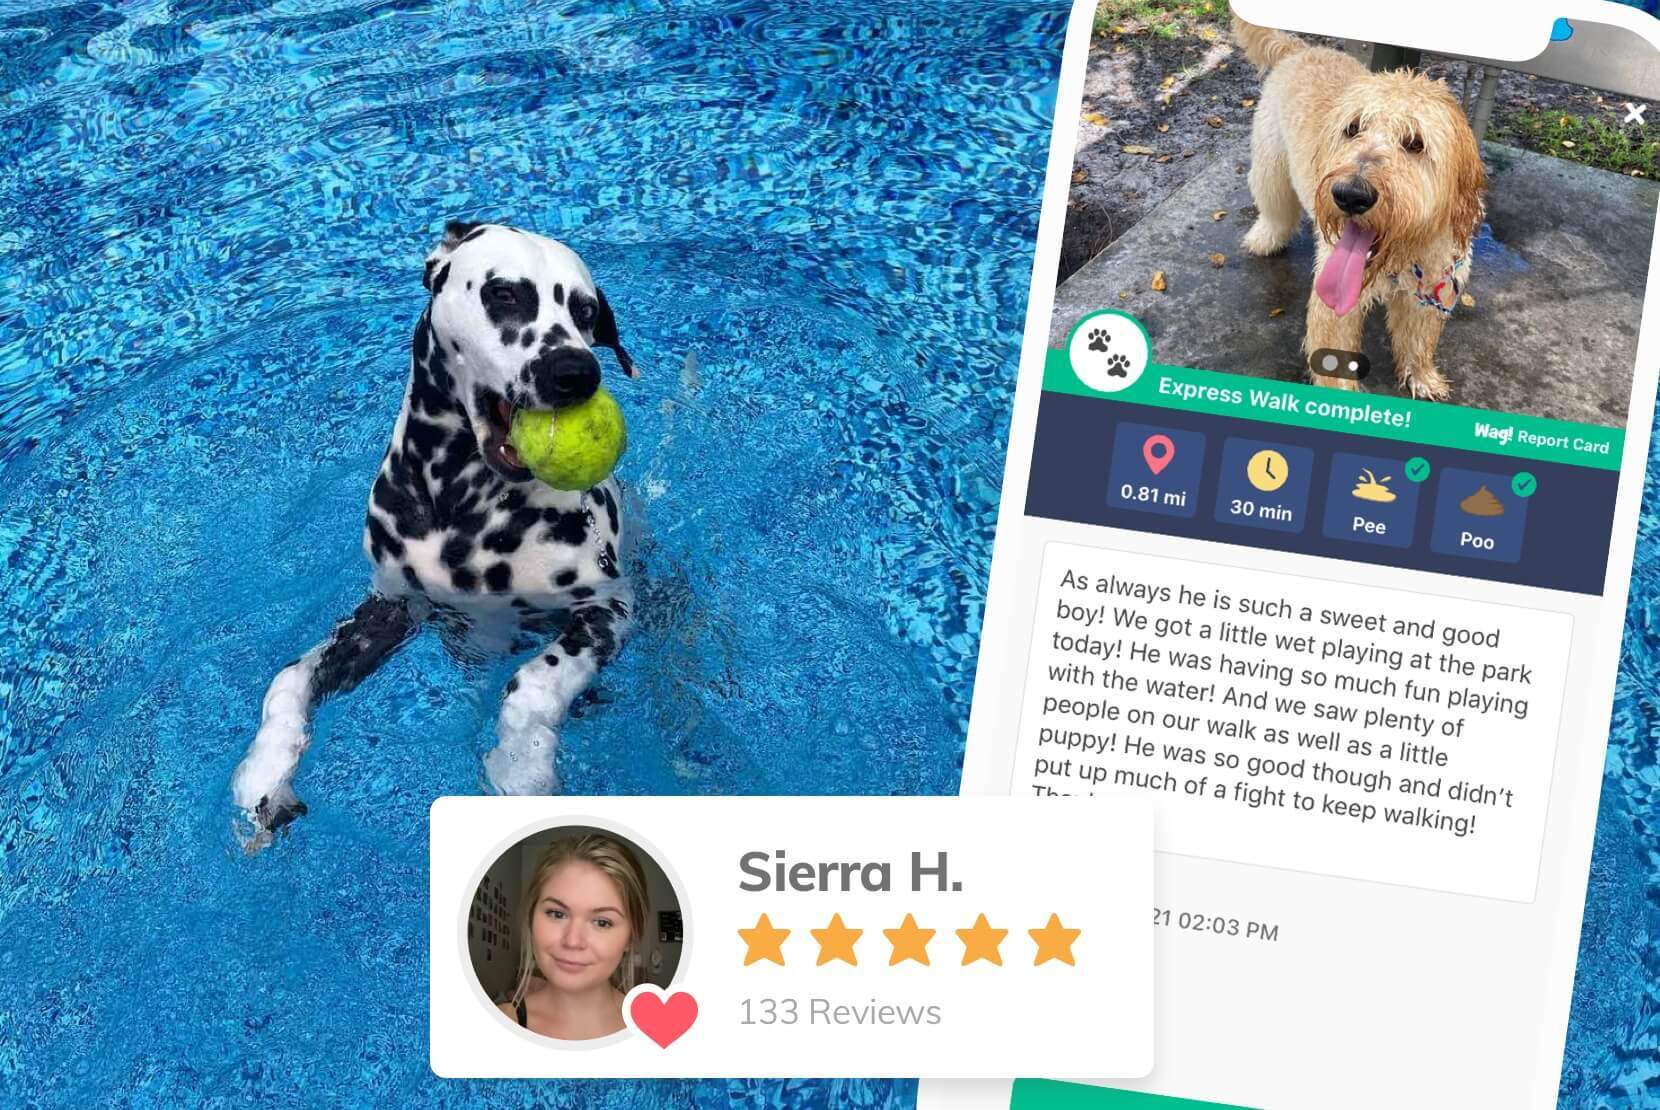 Dog Walker Sierra is known by her clients to go the extra mile to love & care for her doggie clients like Woogs, Mungo, Jabba, and more. She walks dogs in her free time as a college student in Austin.